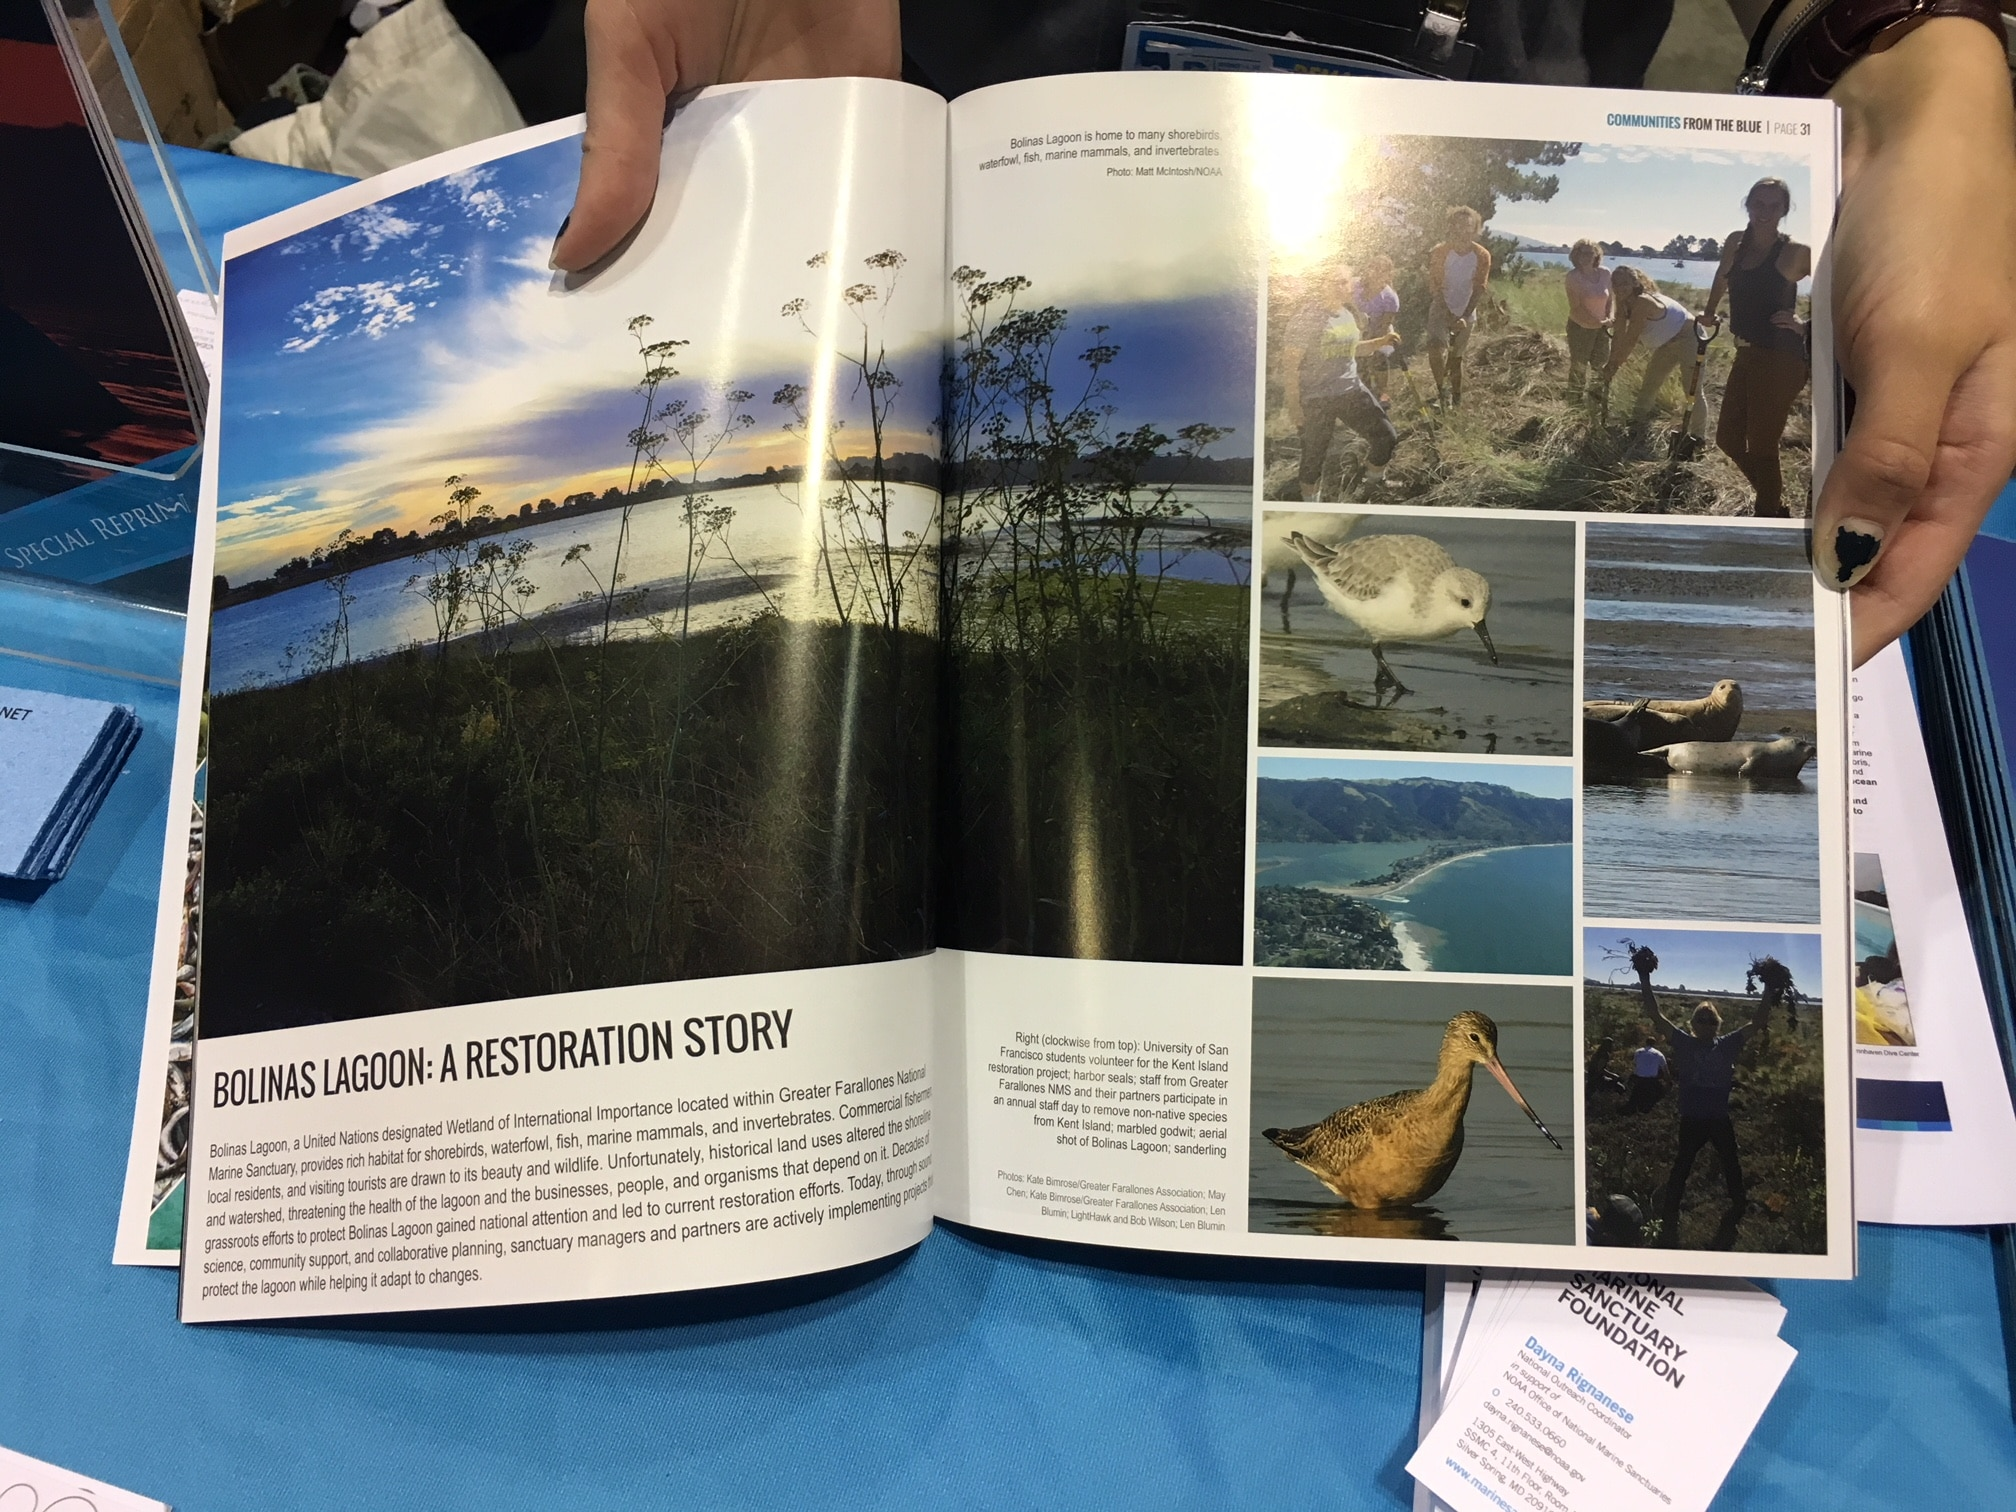 #standupforsanctuaries A story of restoration in the Greater Farallones NMS